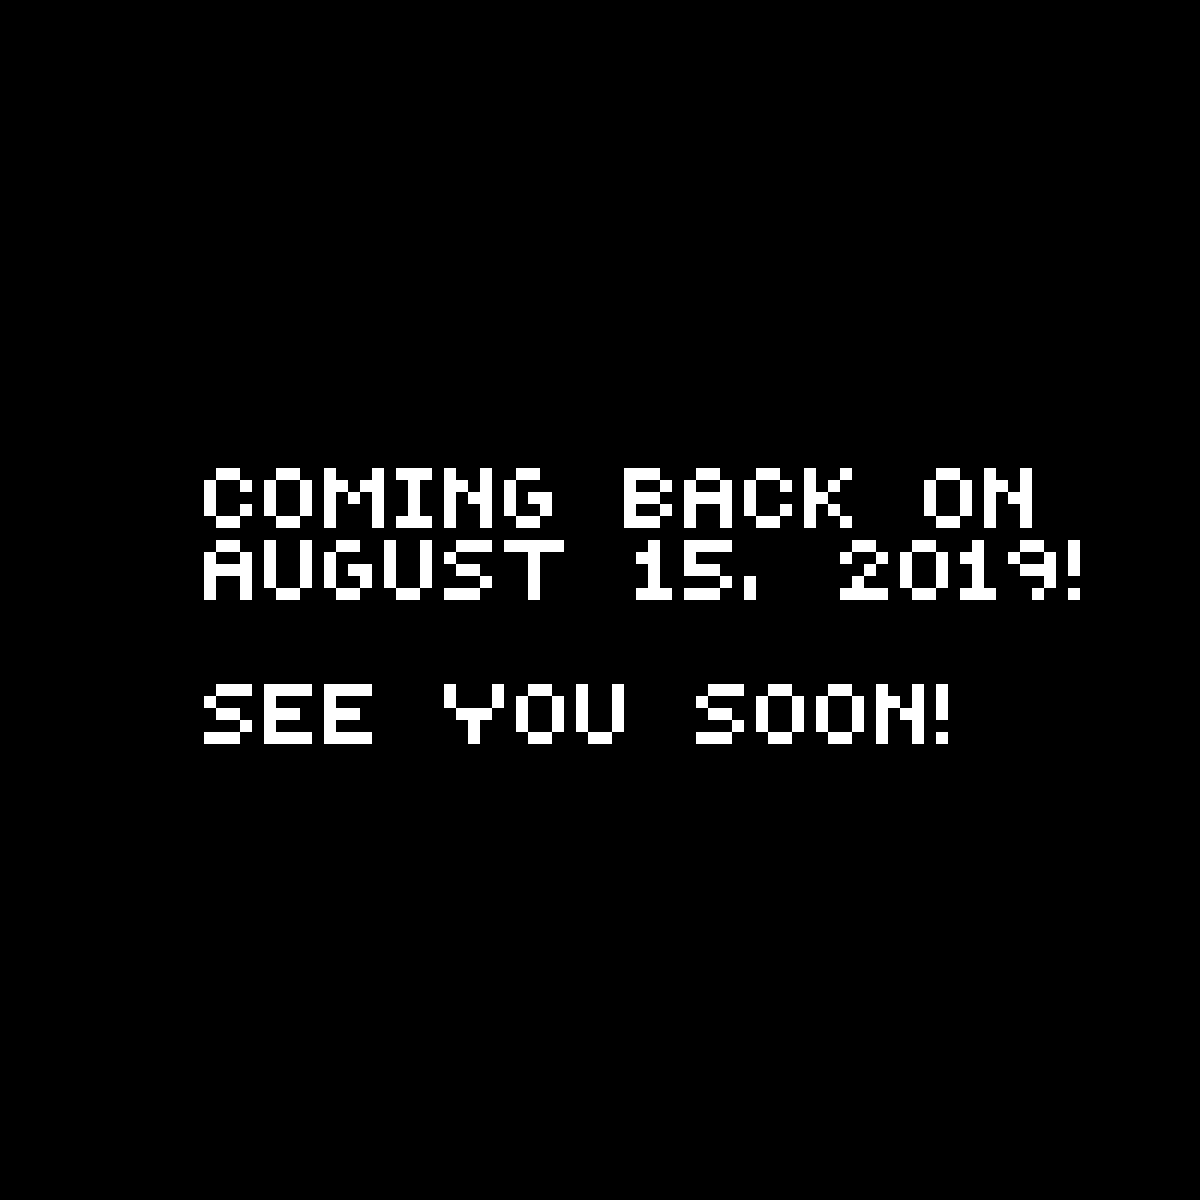 announcement by Weegee123